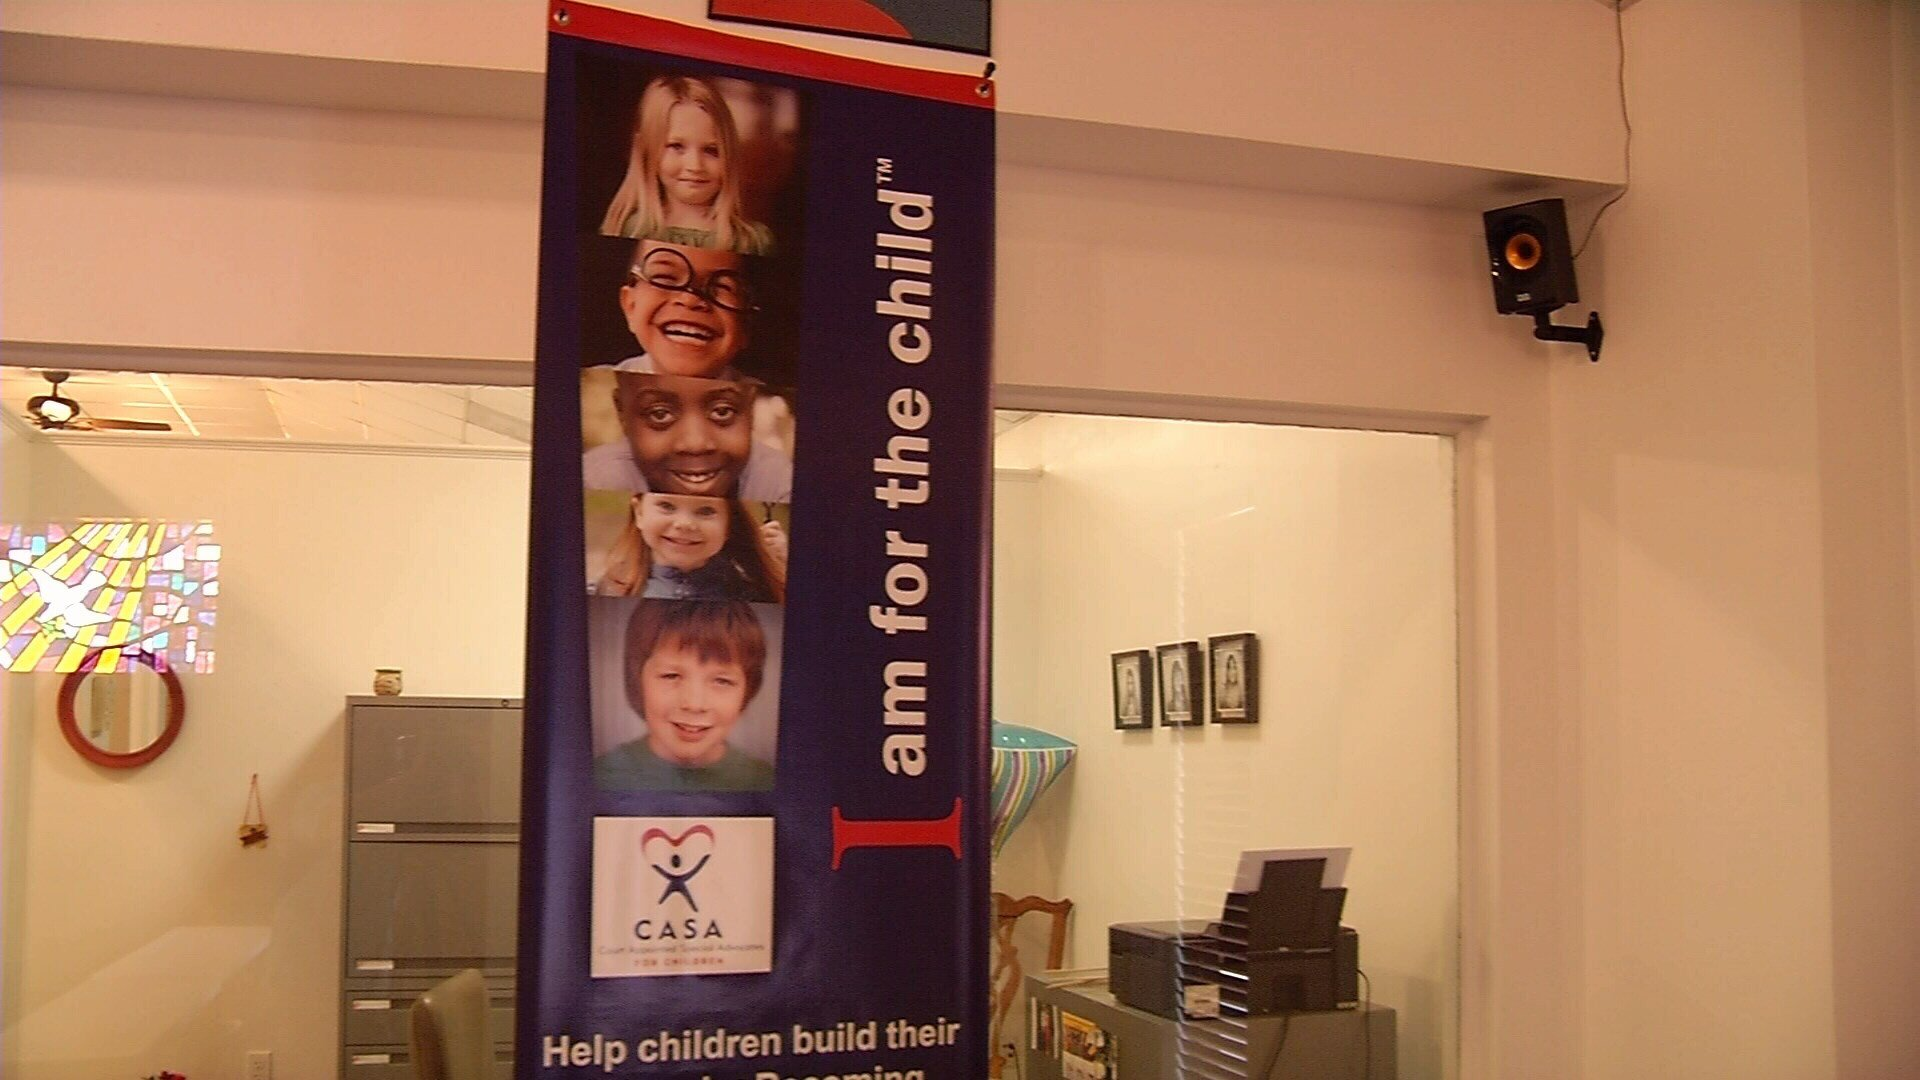 CASA is in need of volunteers to help with abused and neglected children.